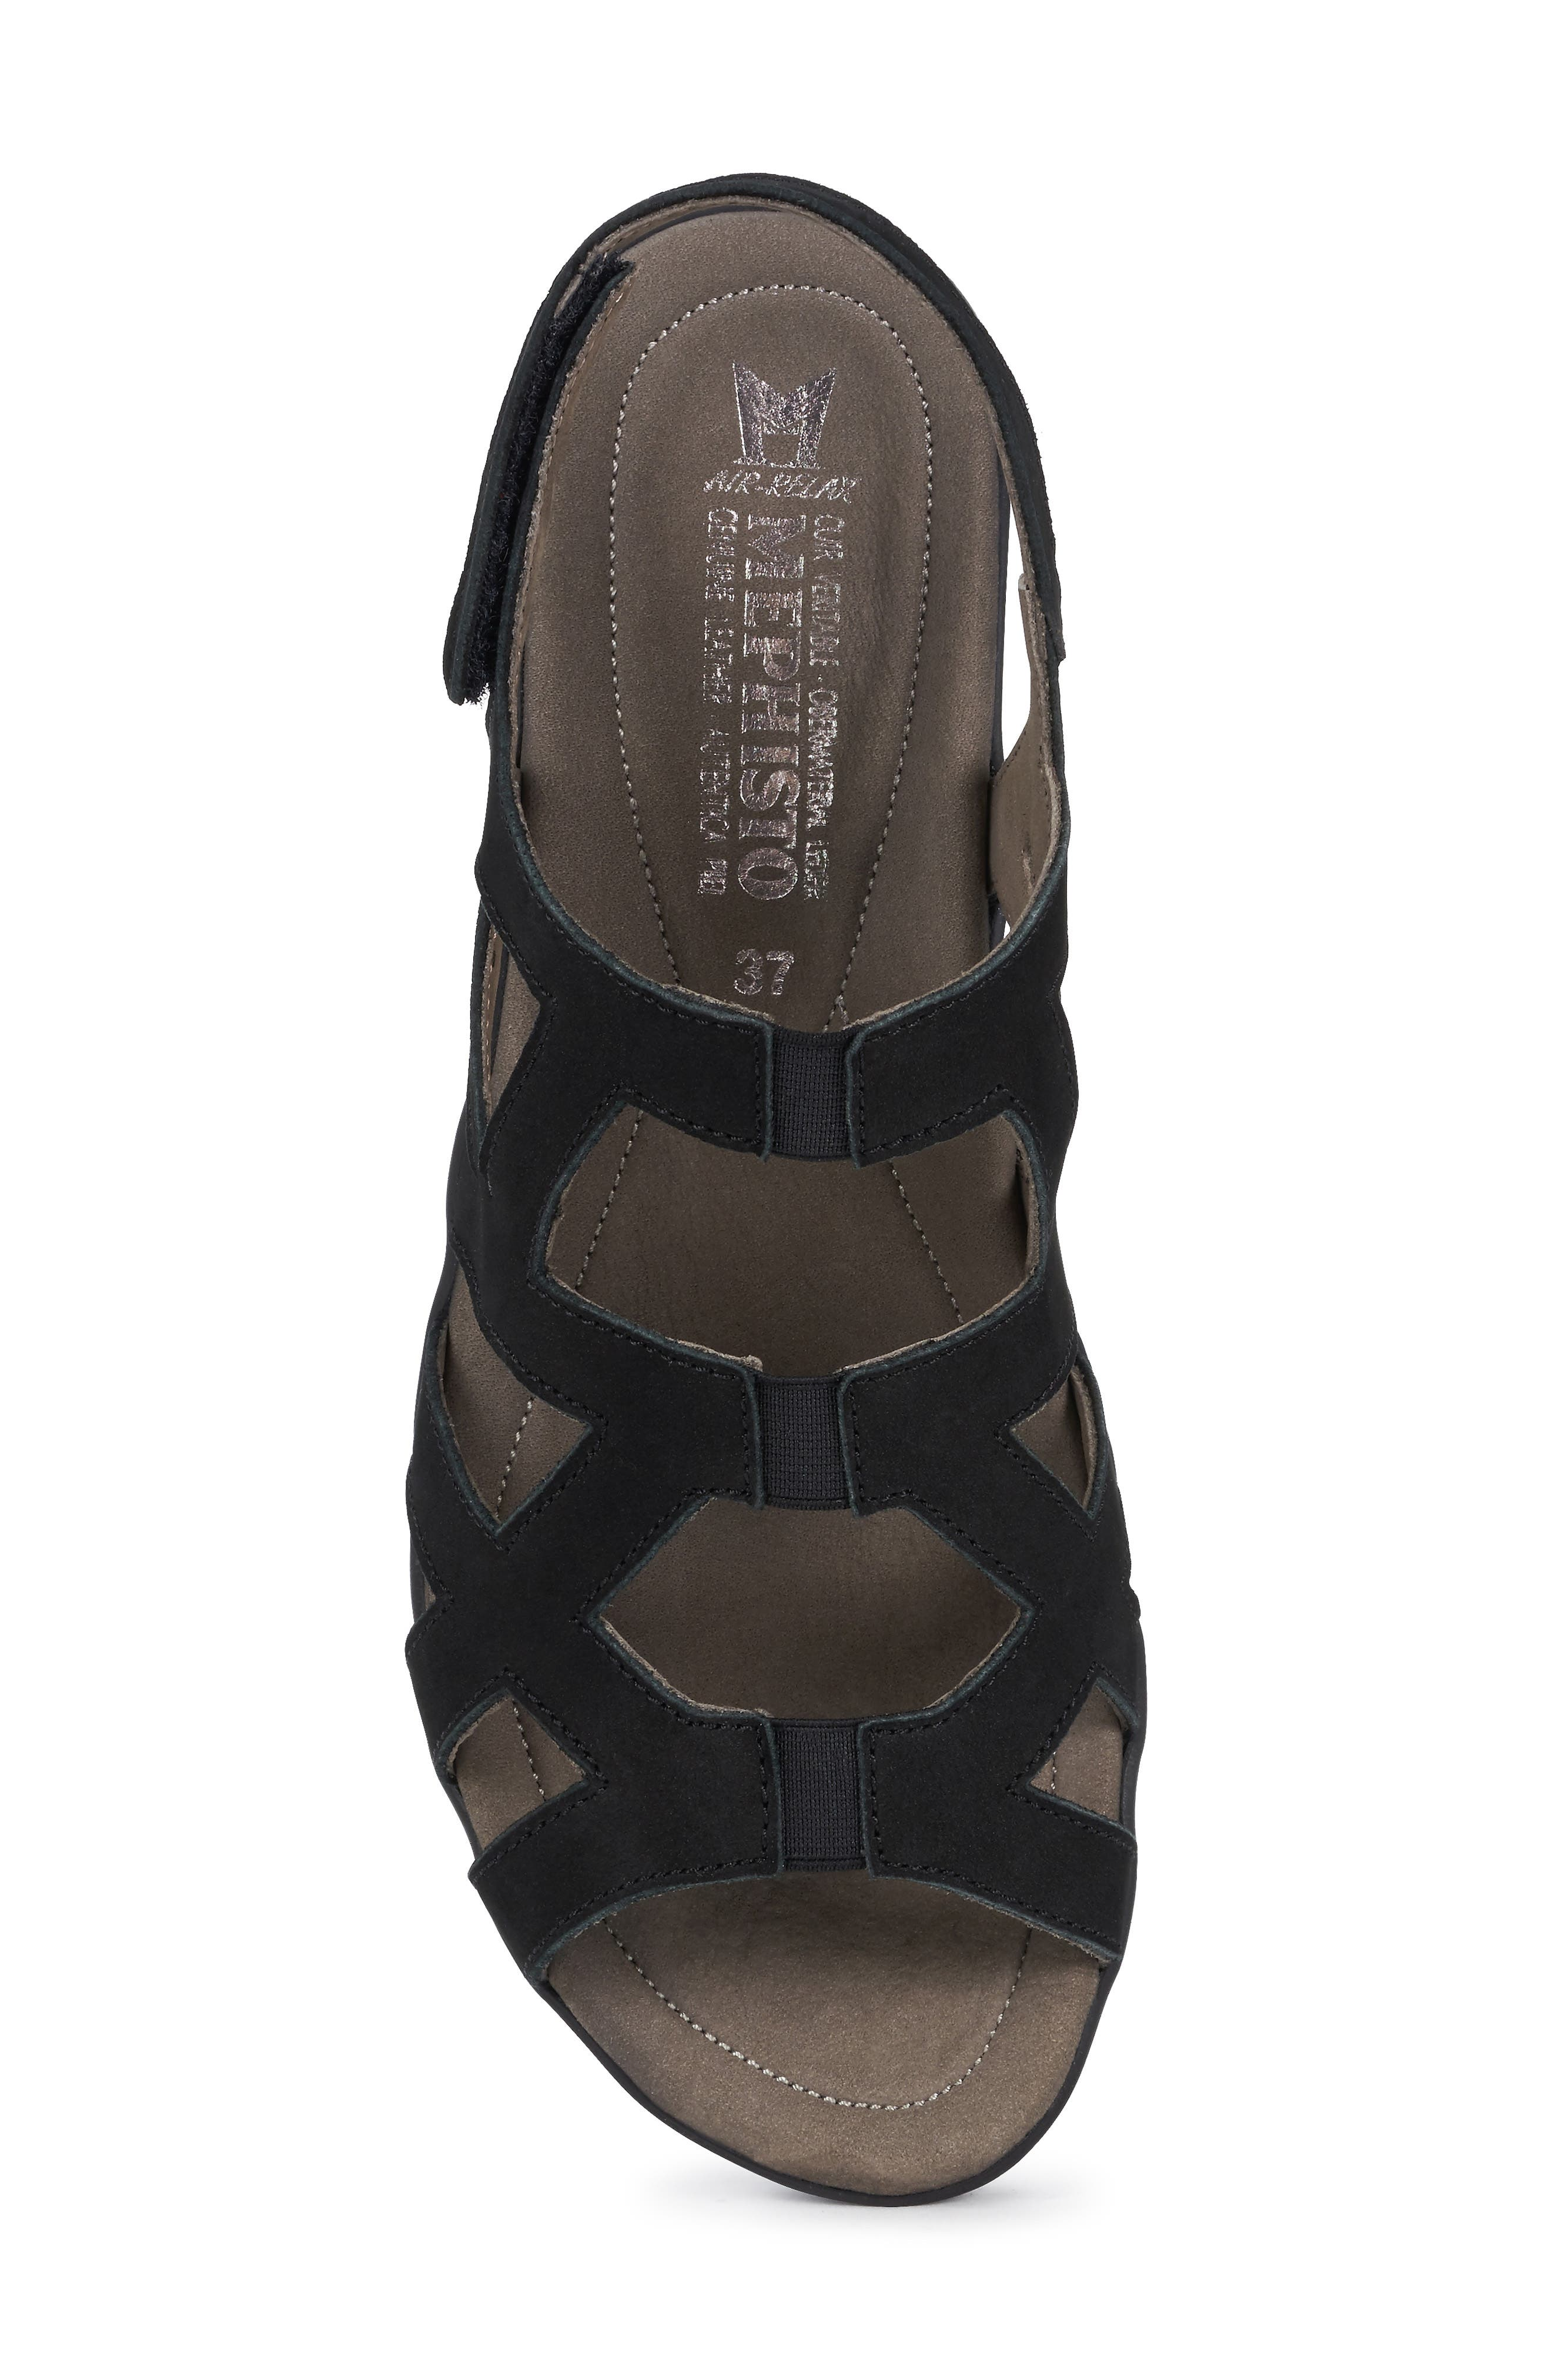 MEPHISTO, Pamela Sandal, Alternate thumbnail 5, color, BLACK NUBUCK